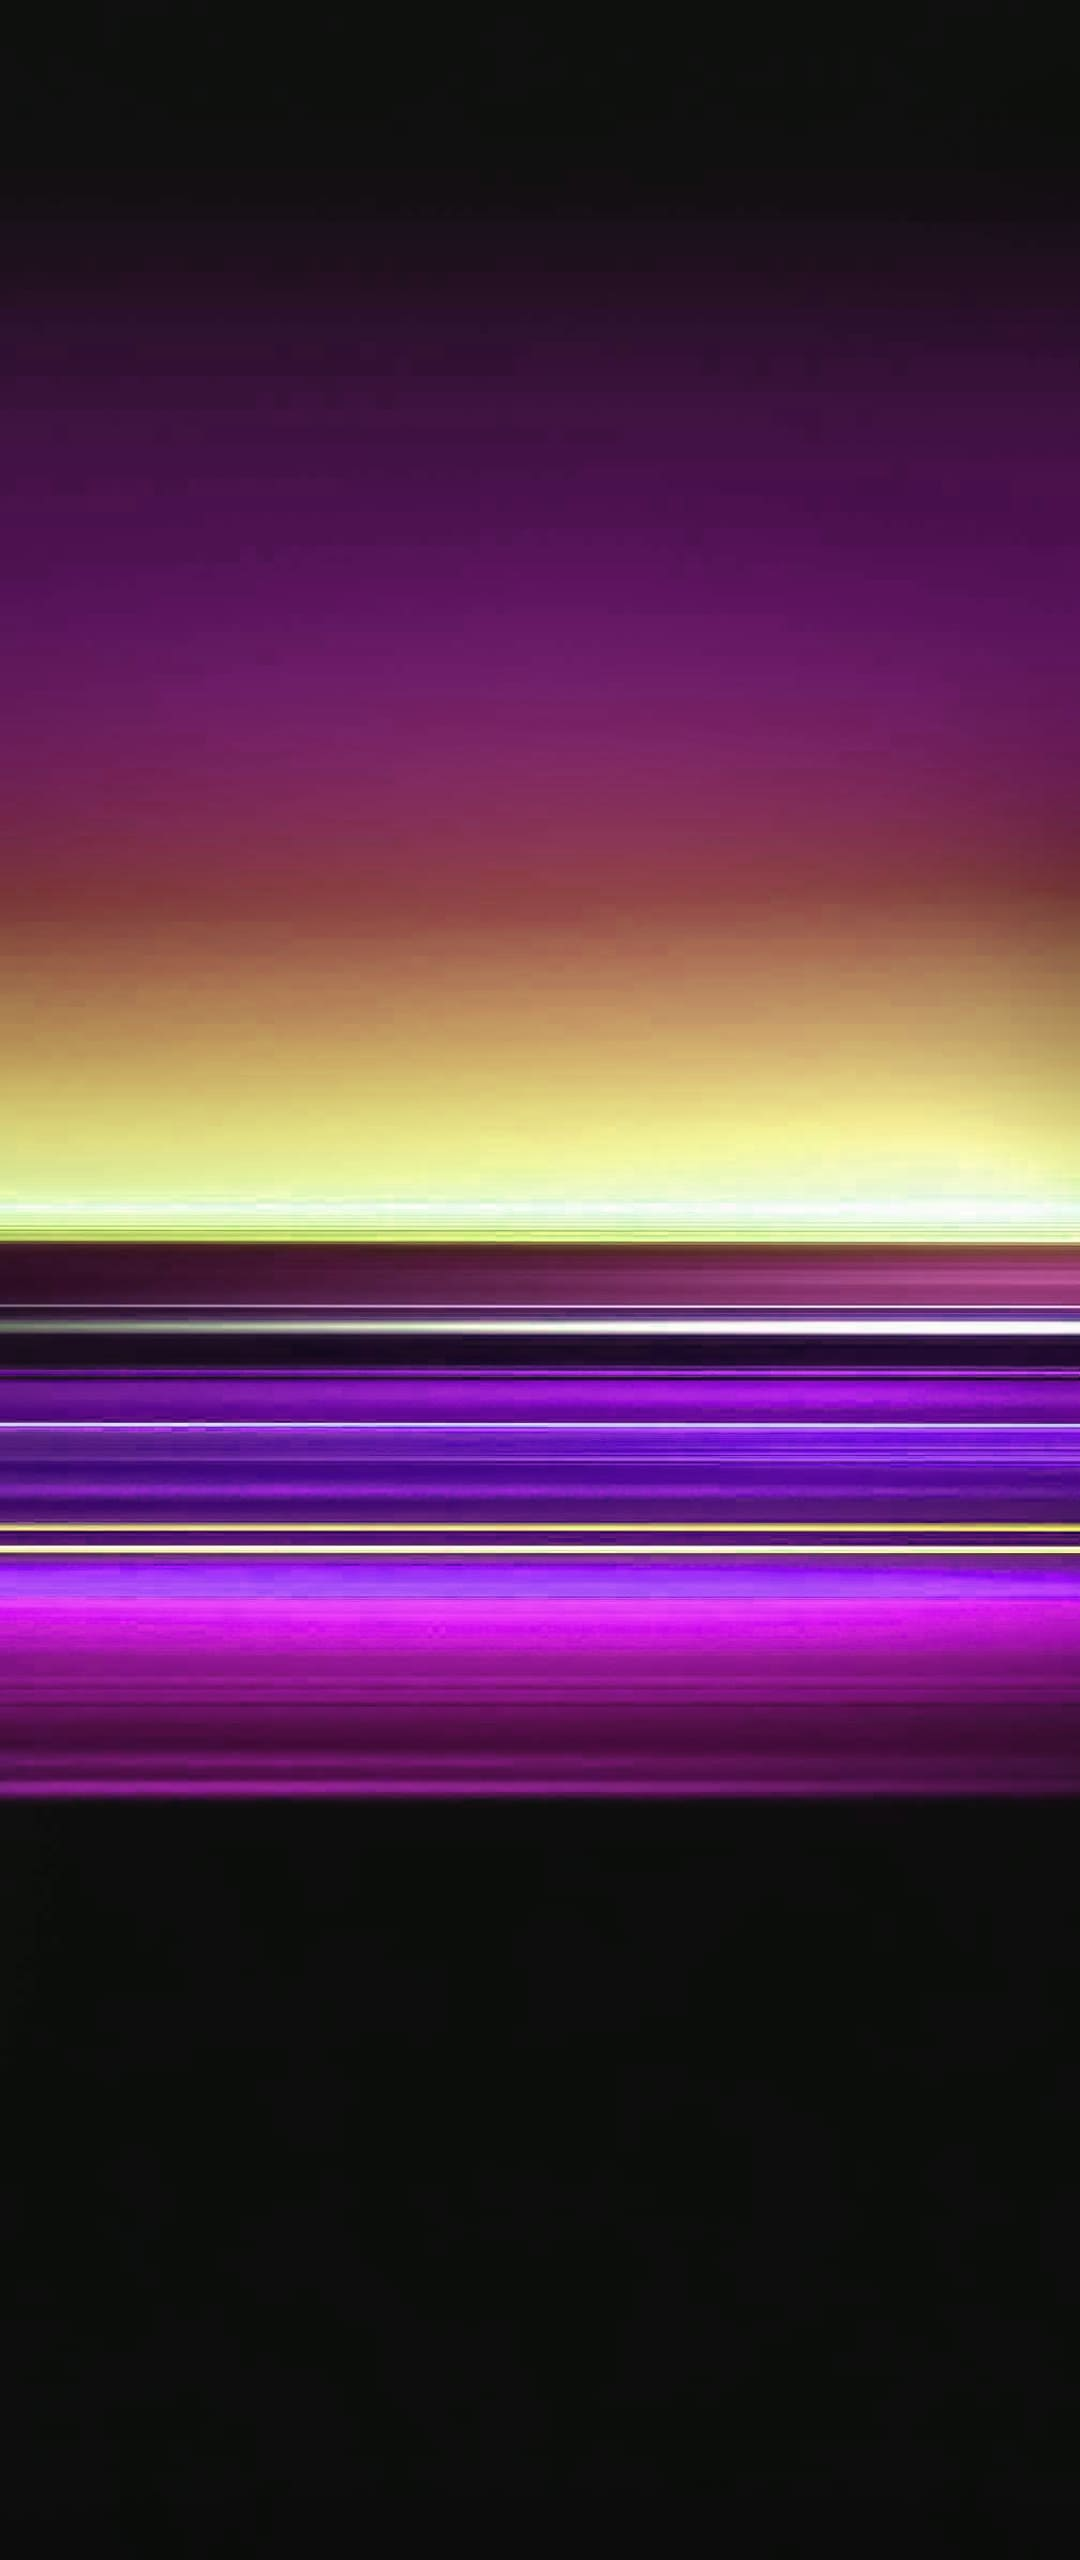 Sony Xperia Wallpapers Hd Posted By Christopher Sellers